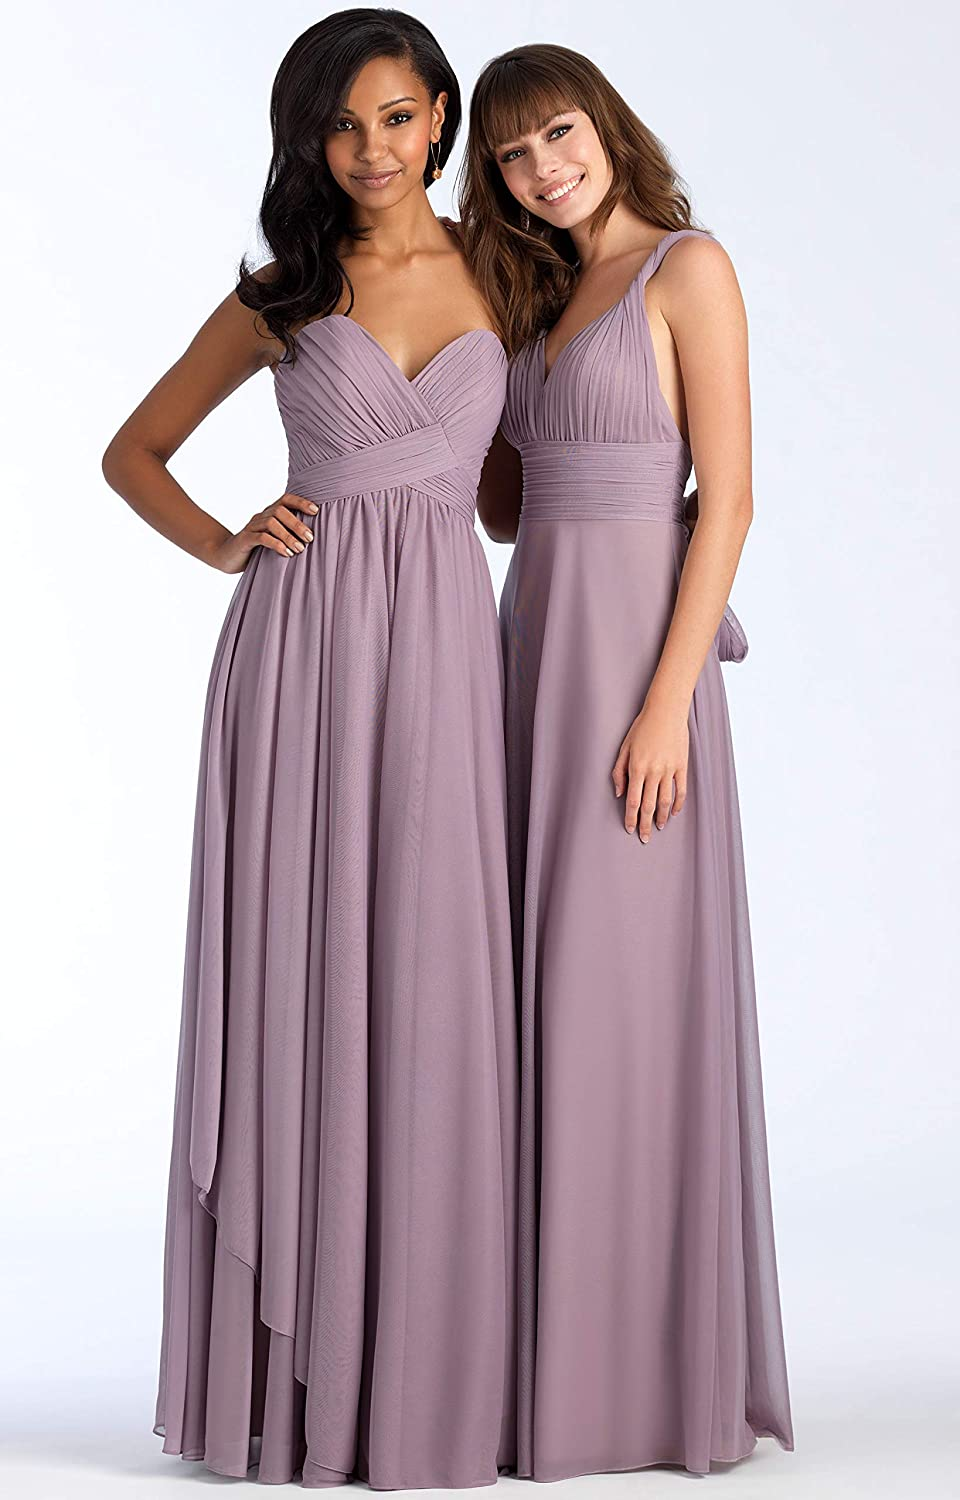 WuliDress Womens Chiffon Ruched A Line Sweetheart Bridesmaid Dresses Long Formal Party Prom Gowns